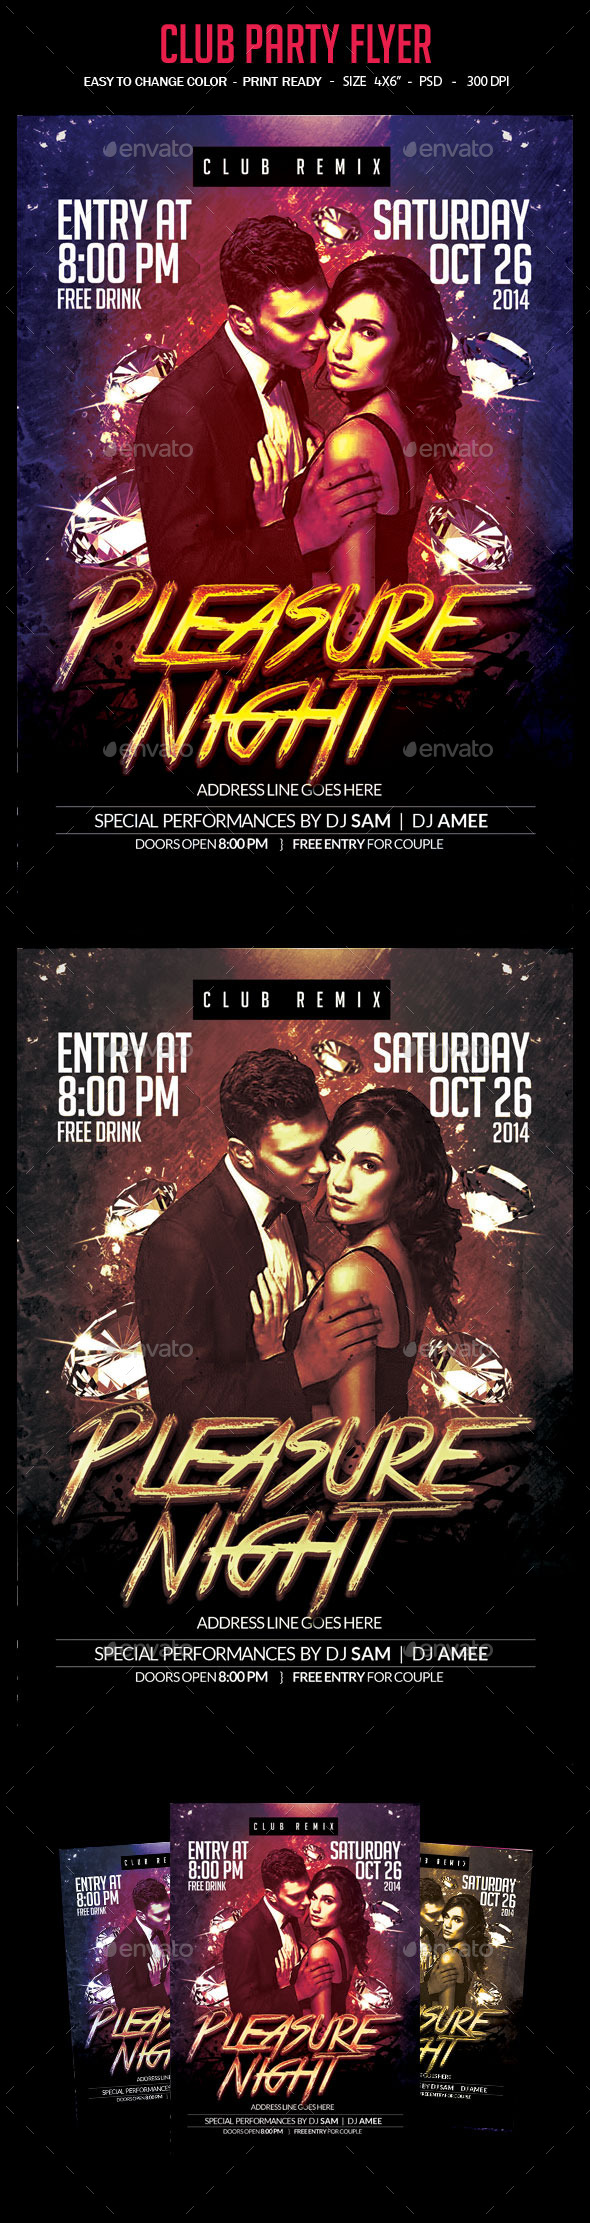 Pleasure Night Party Flyer - Clubs & Parties Events